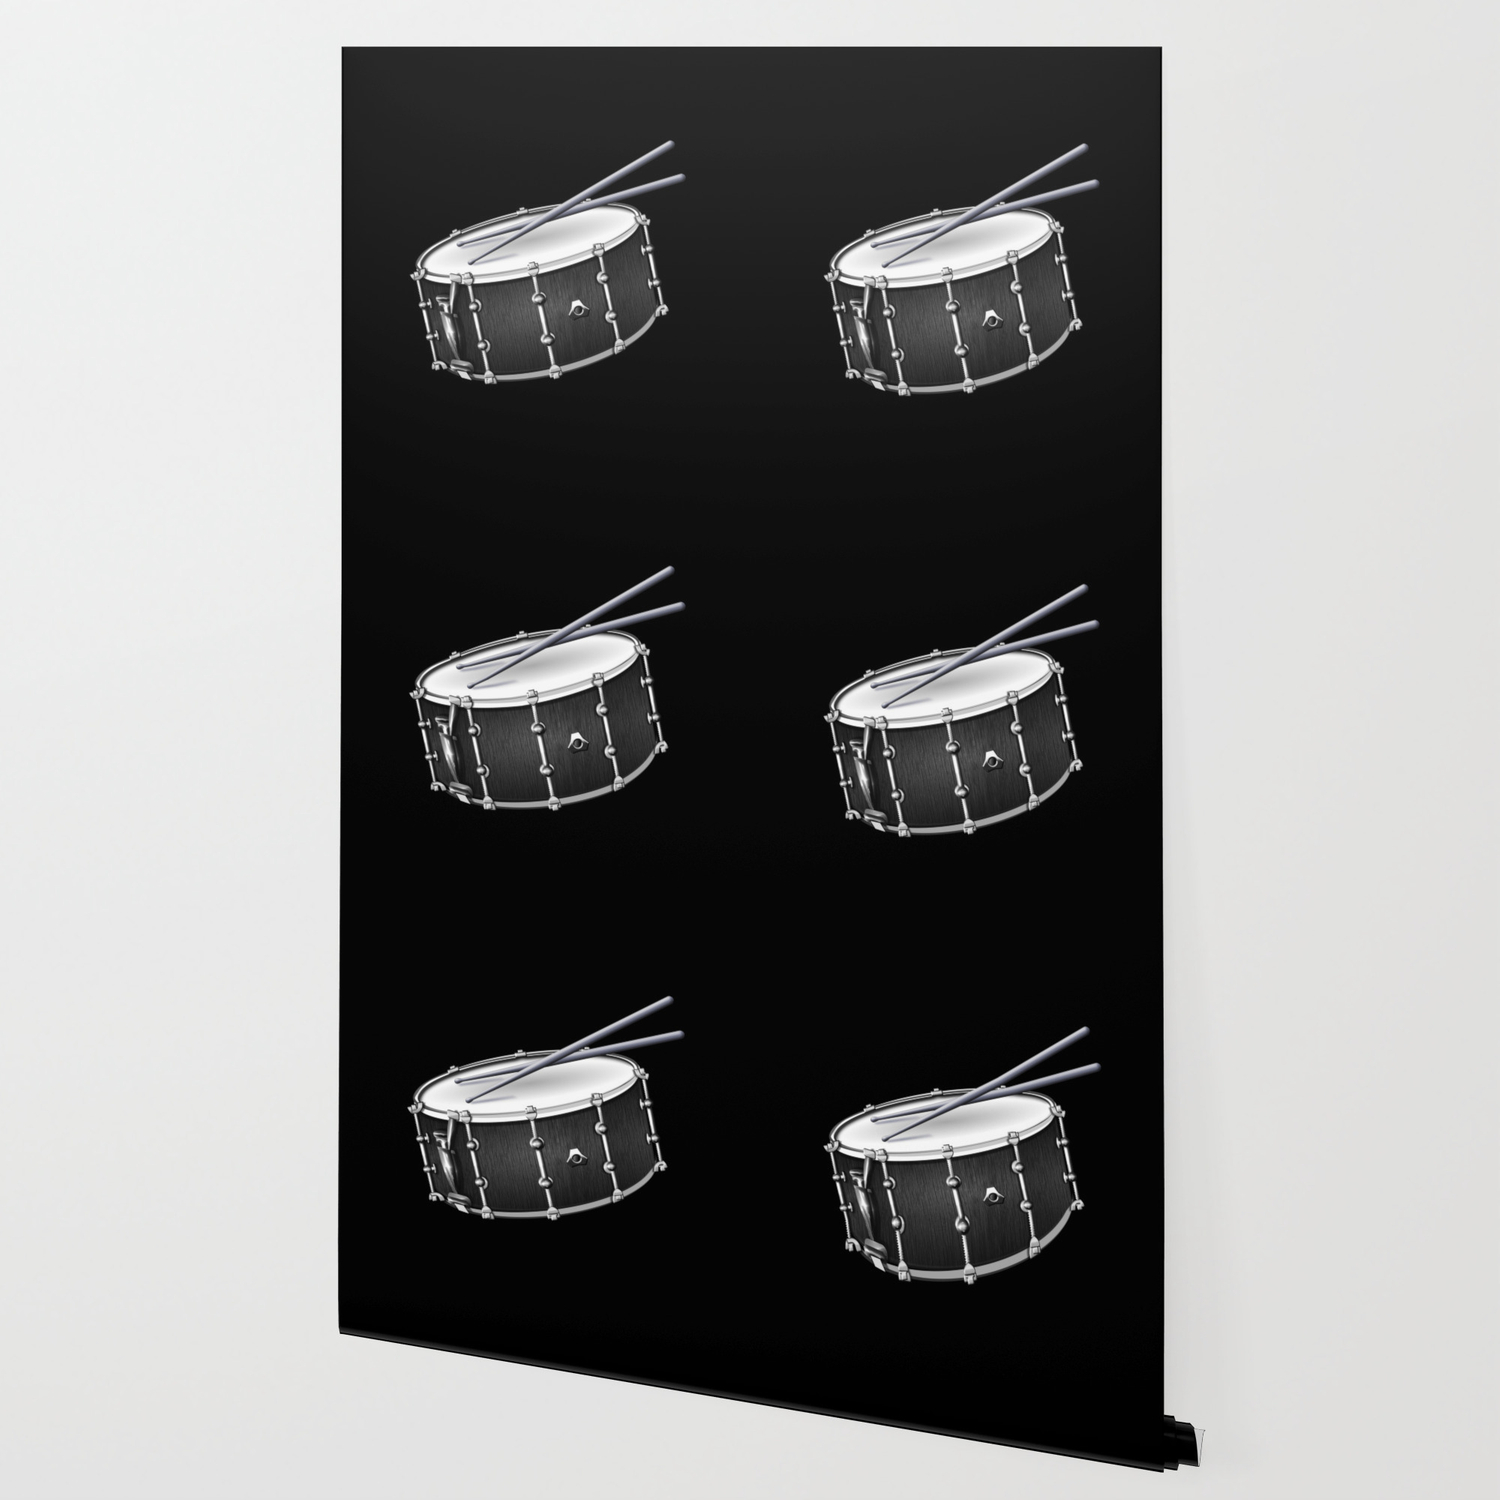 Snare Drum And Sticks Wallpaper